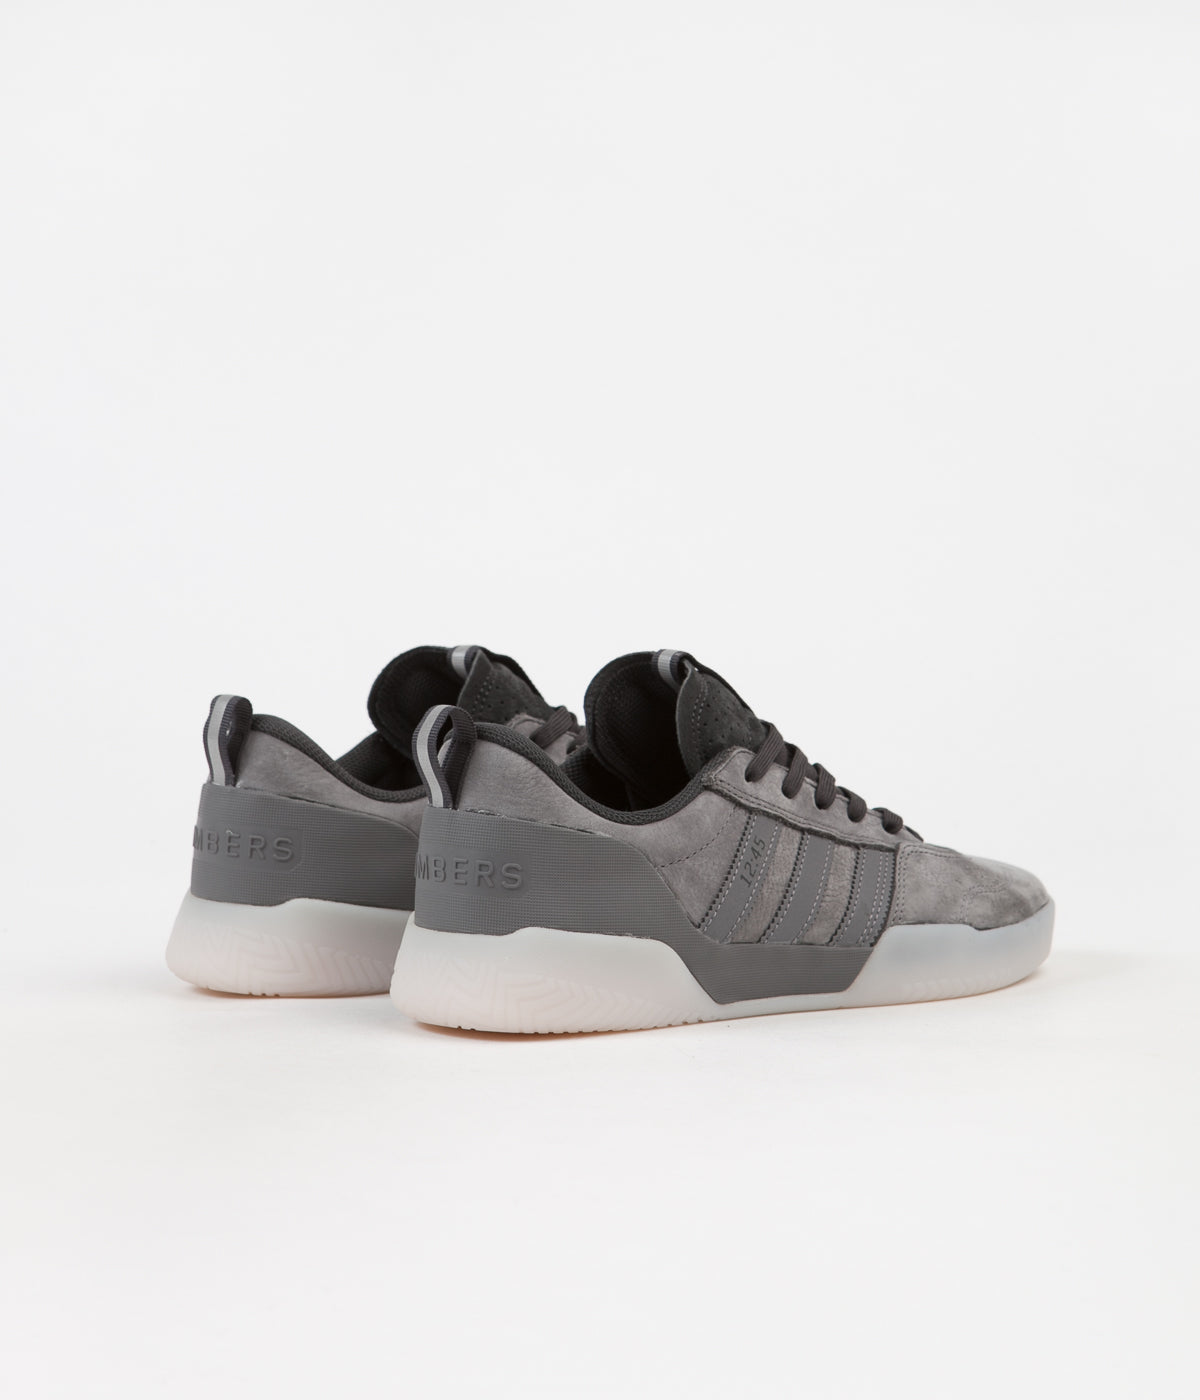 Adidas x Numbers City Cup Shoes - Grey